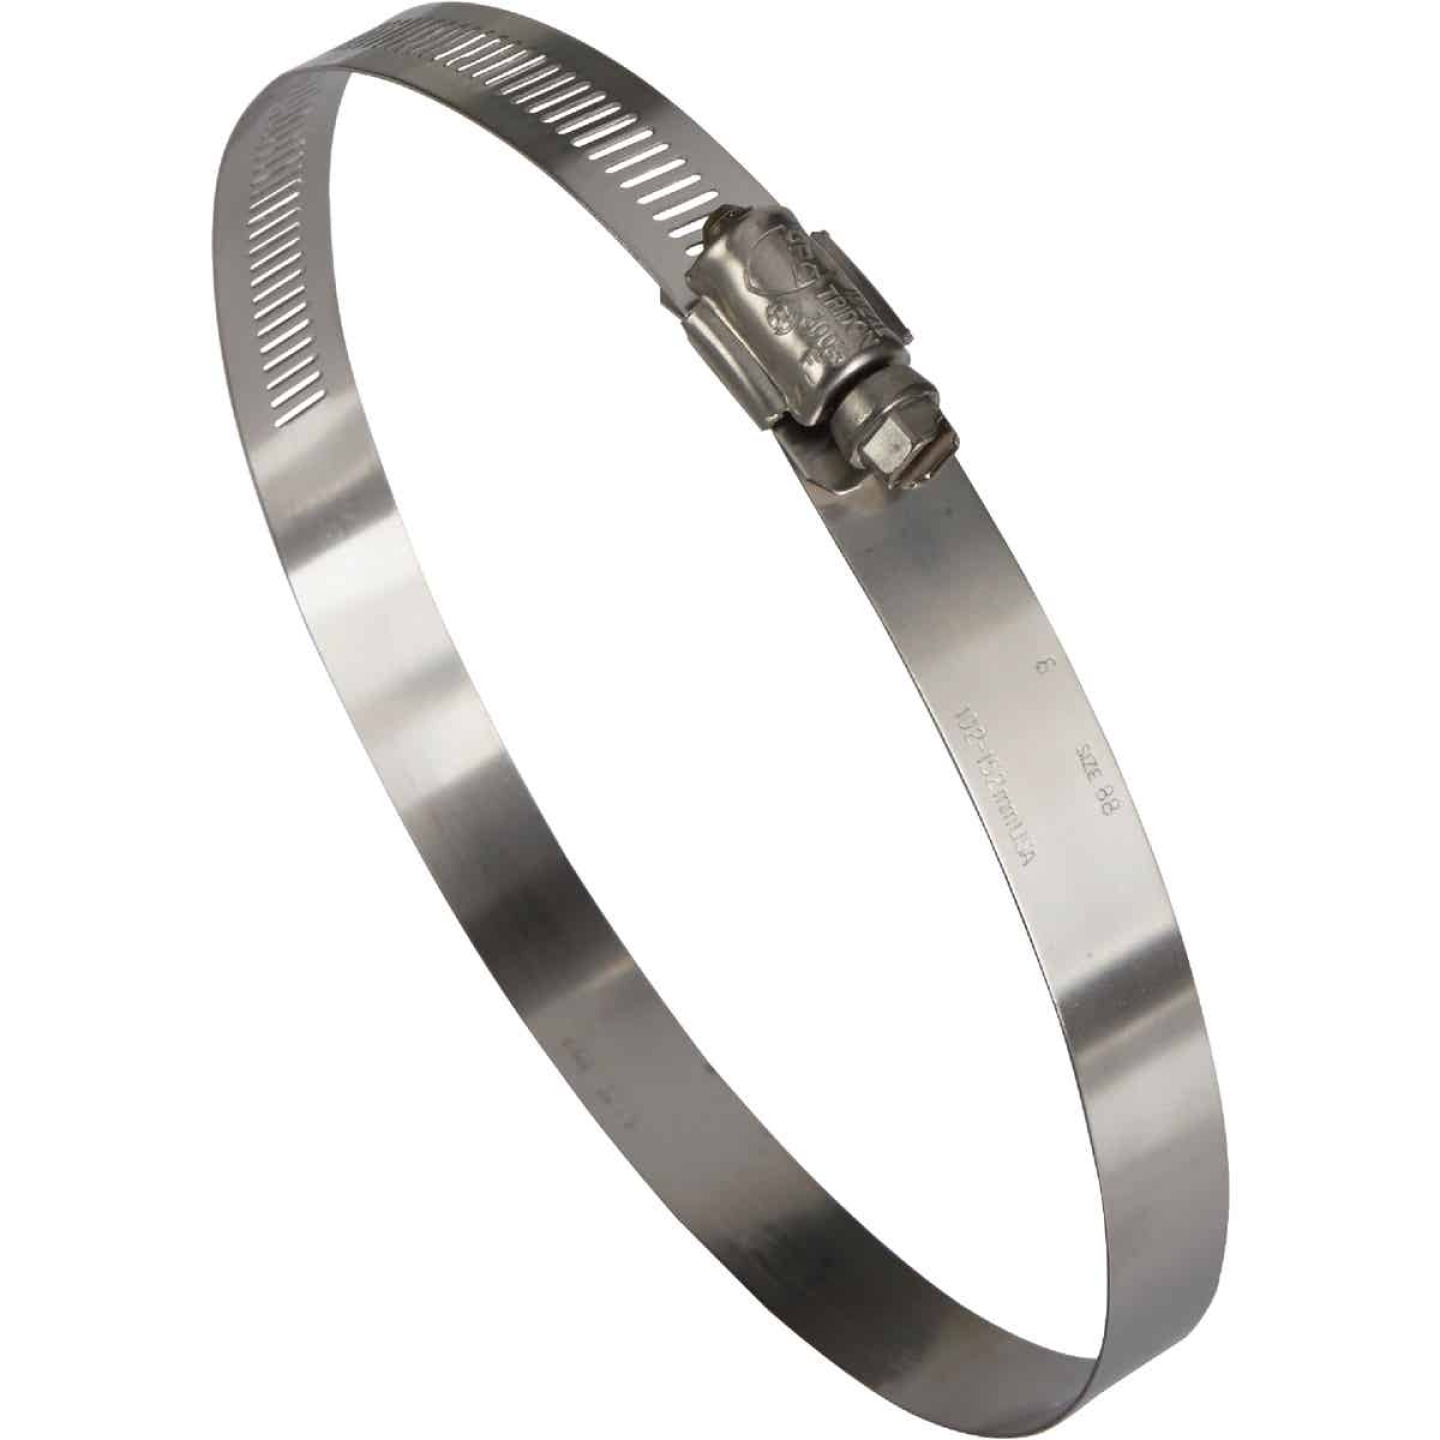 Ideal 4 In. - 6 In. All Stainless Steel Marine-Grade Hose Clamp Image 1